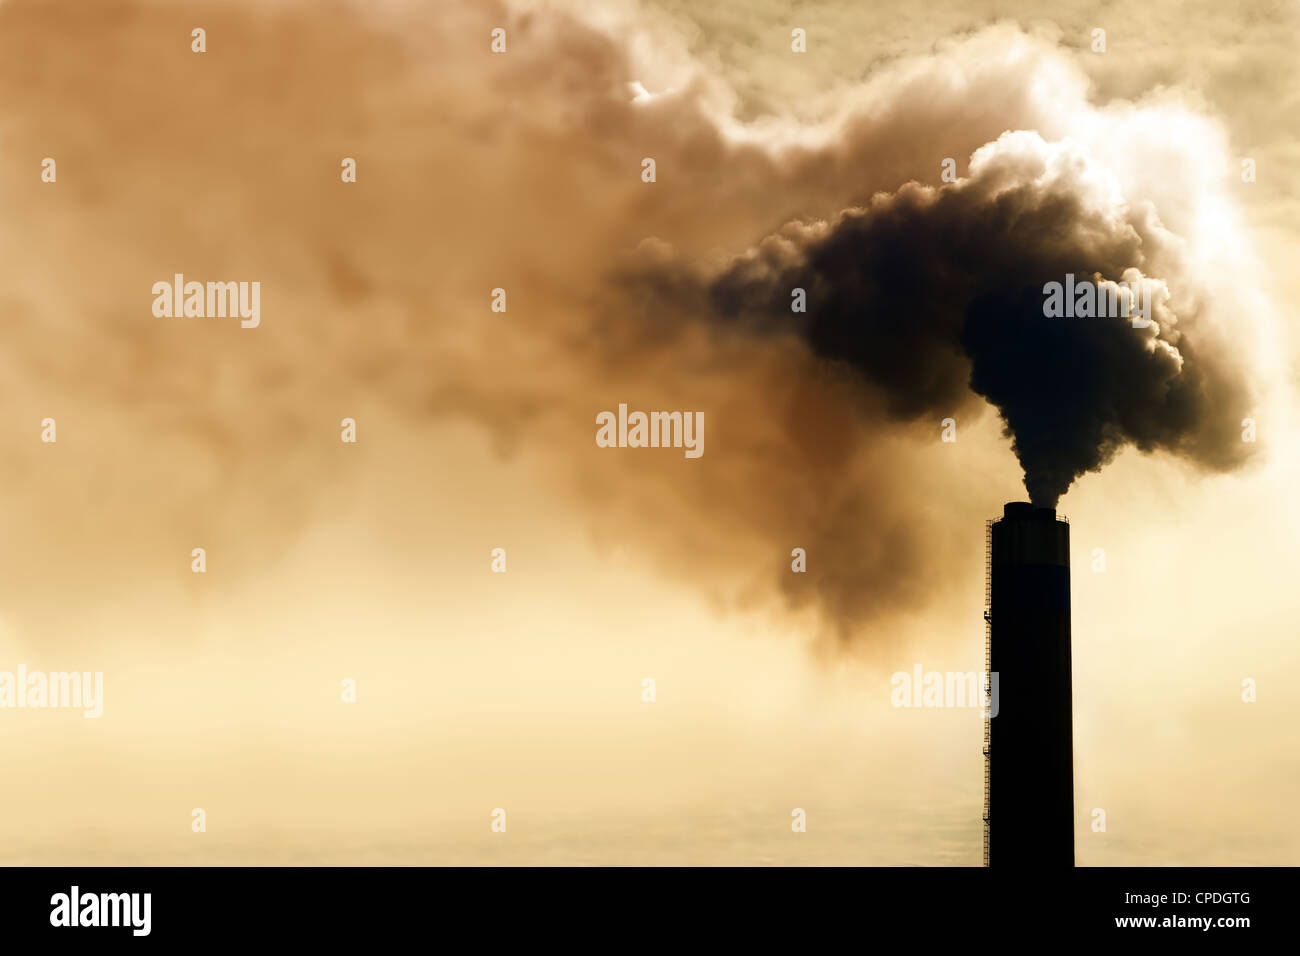 Heavy smoke from industrial chimney polluting the environment - Stock Image